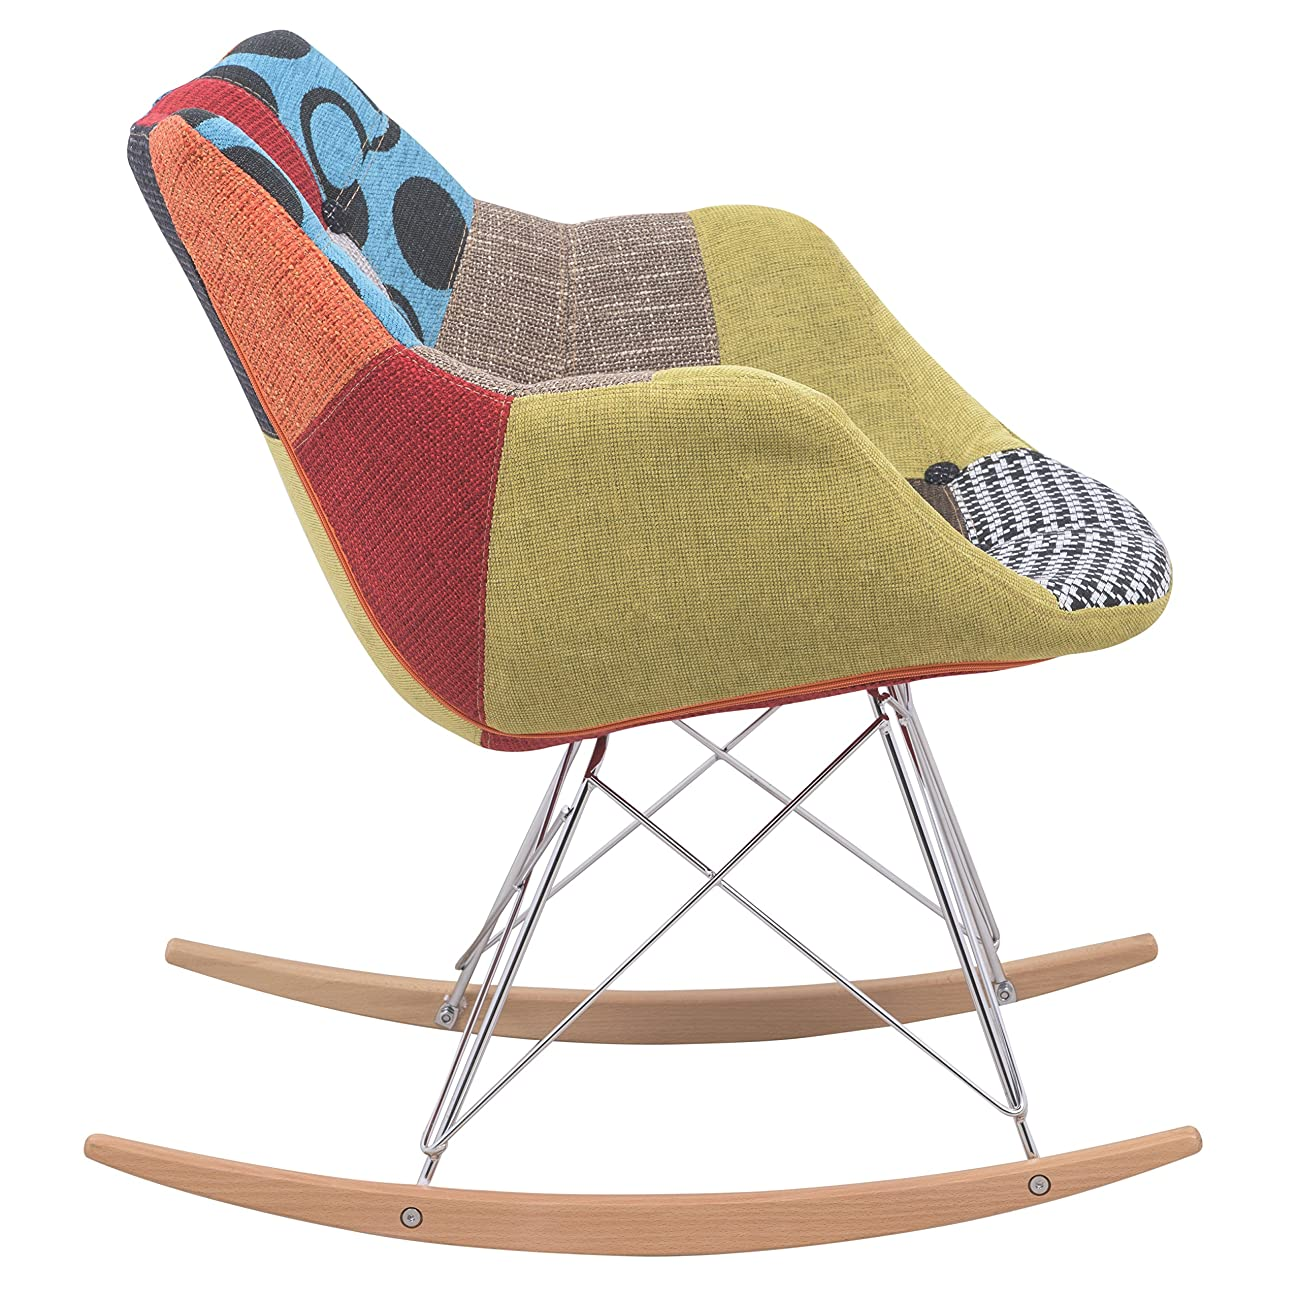 LeisureMod Willow Patchwork Fabric Eiffel Rocking Chair, Multicolor 2